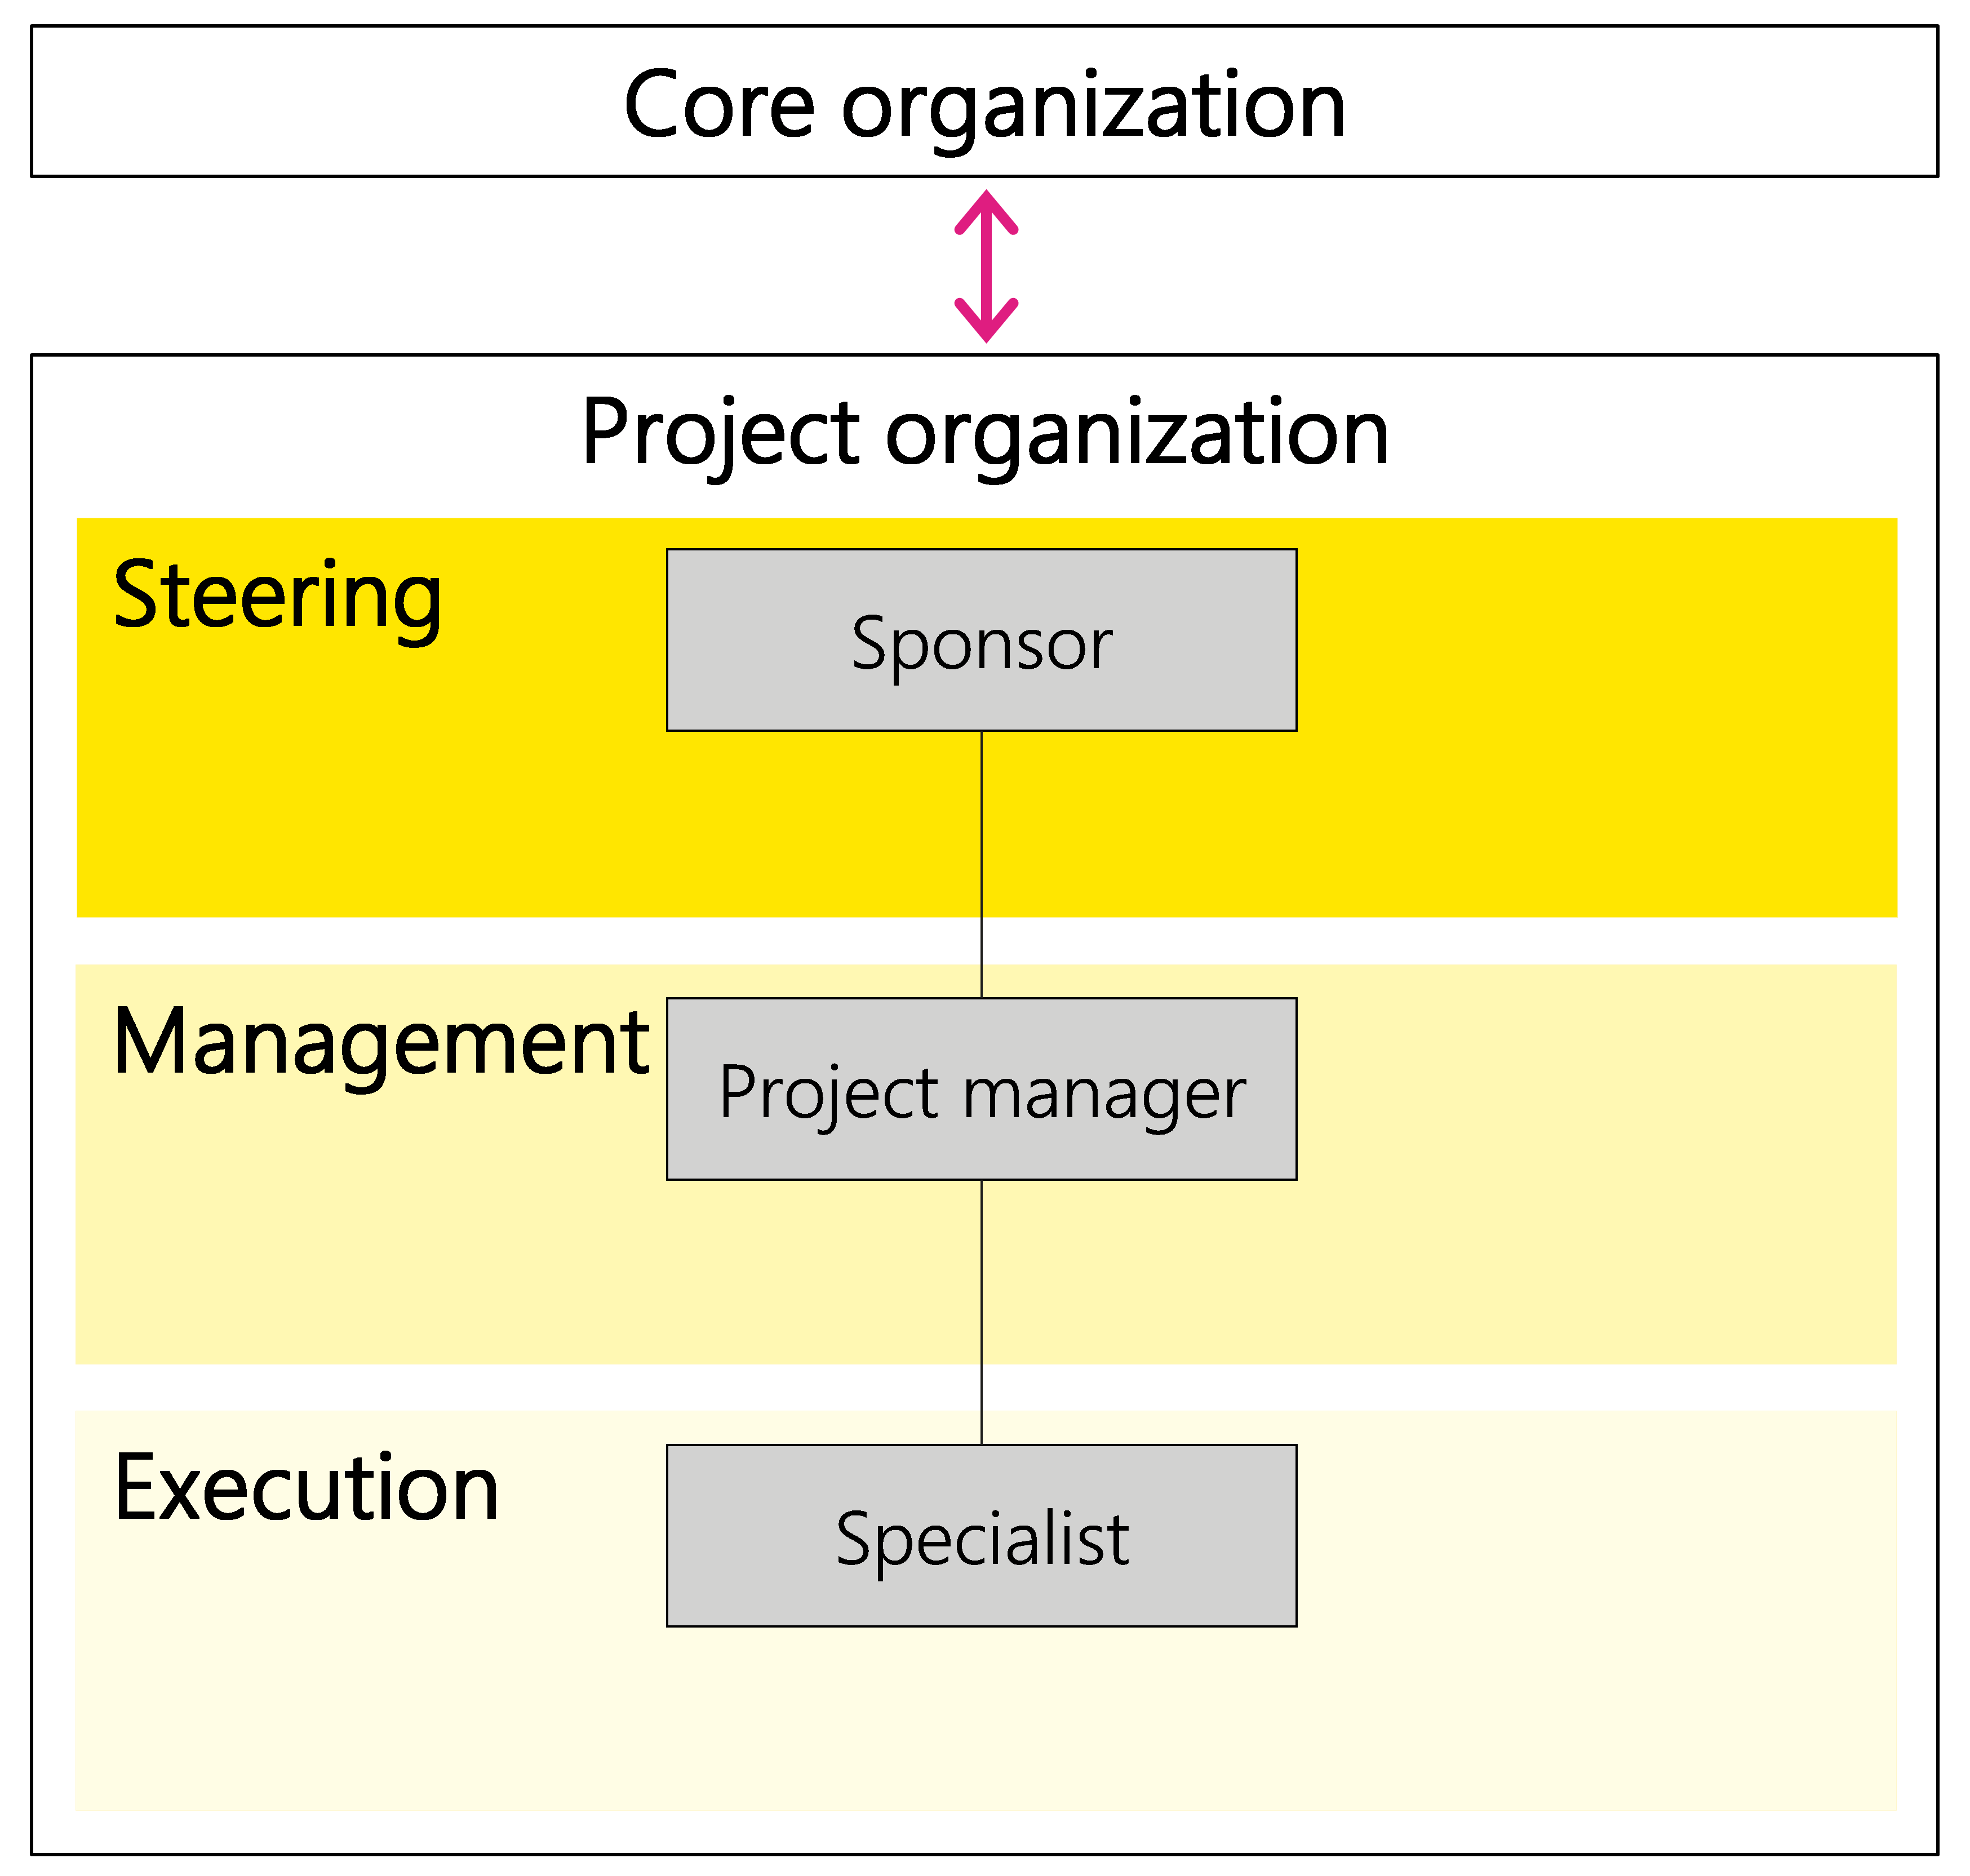 Figure 4: Relationship between the core and project organization